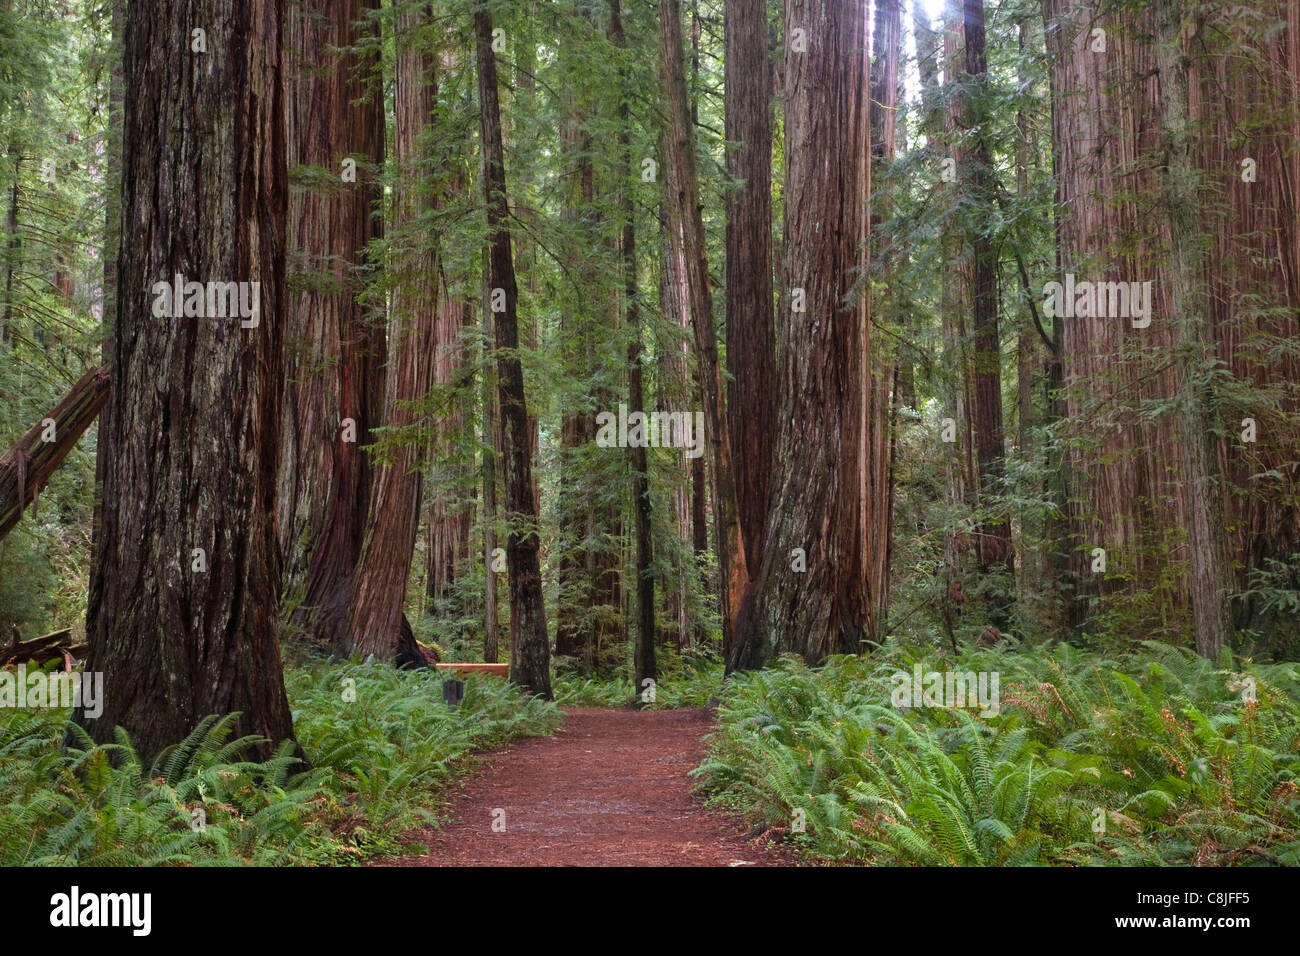 CALIFORNIA - Trail through the redwood forest in Stout Grove in Jedediah Smith Redwoods State Park . - Stock Image